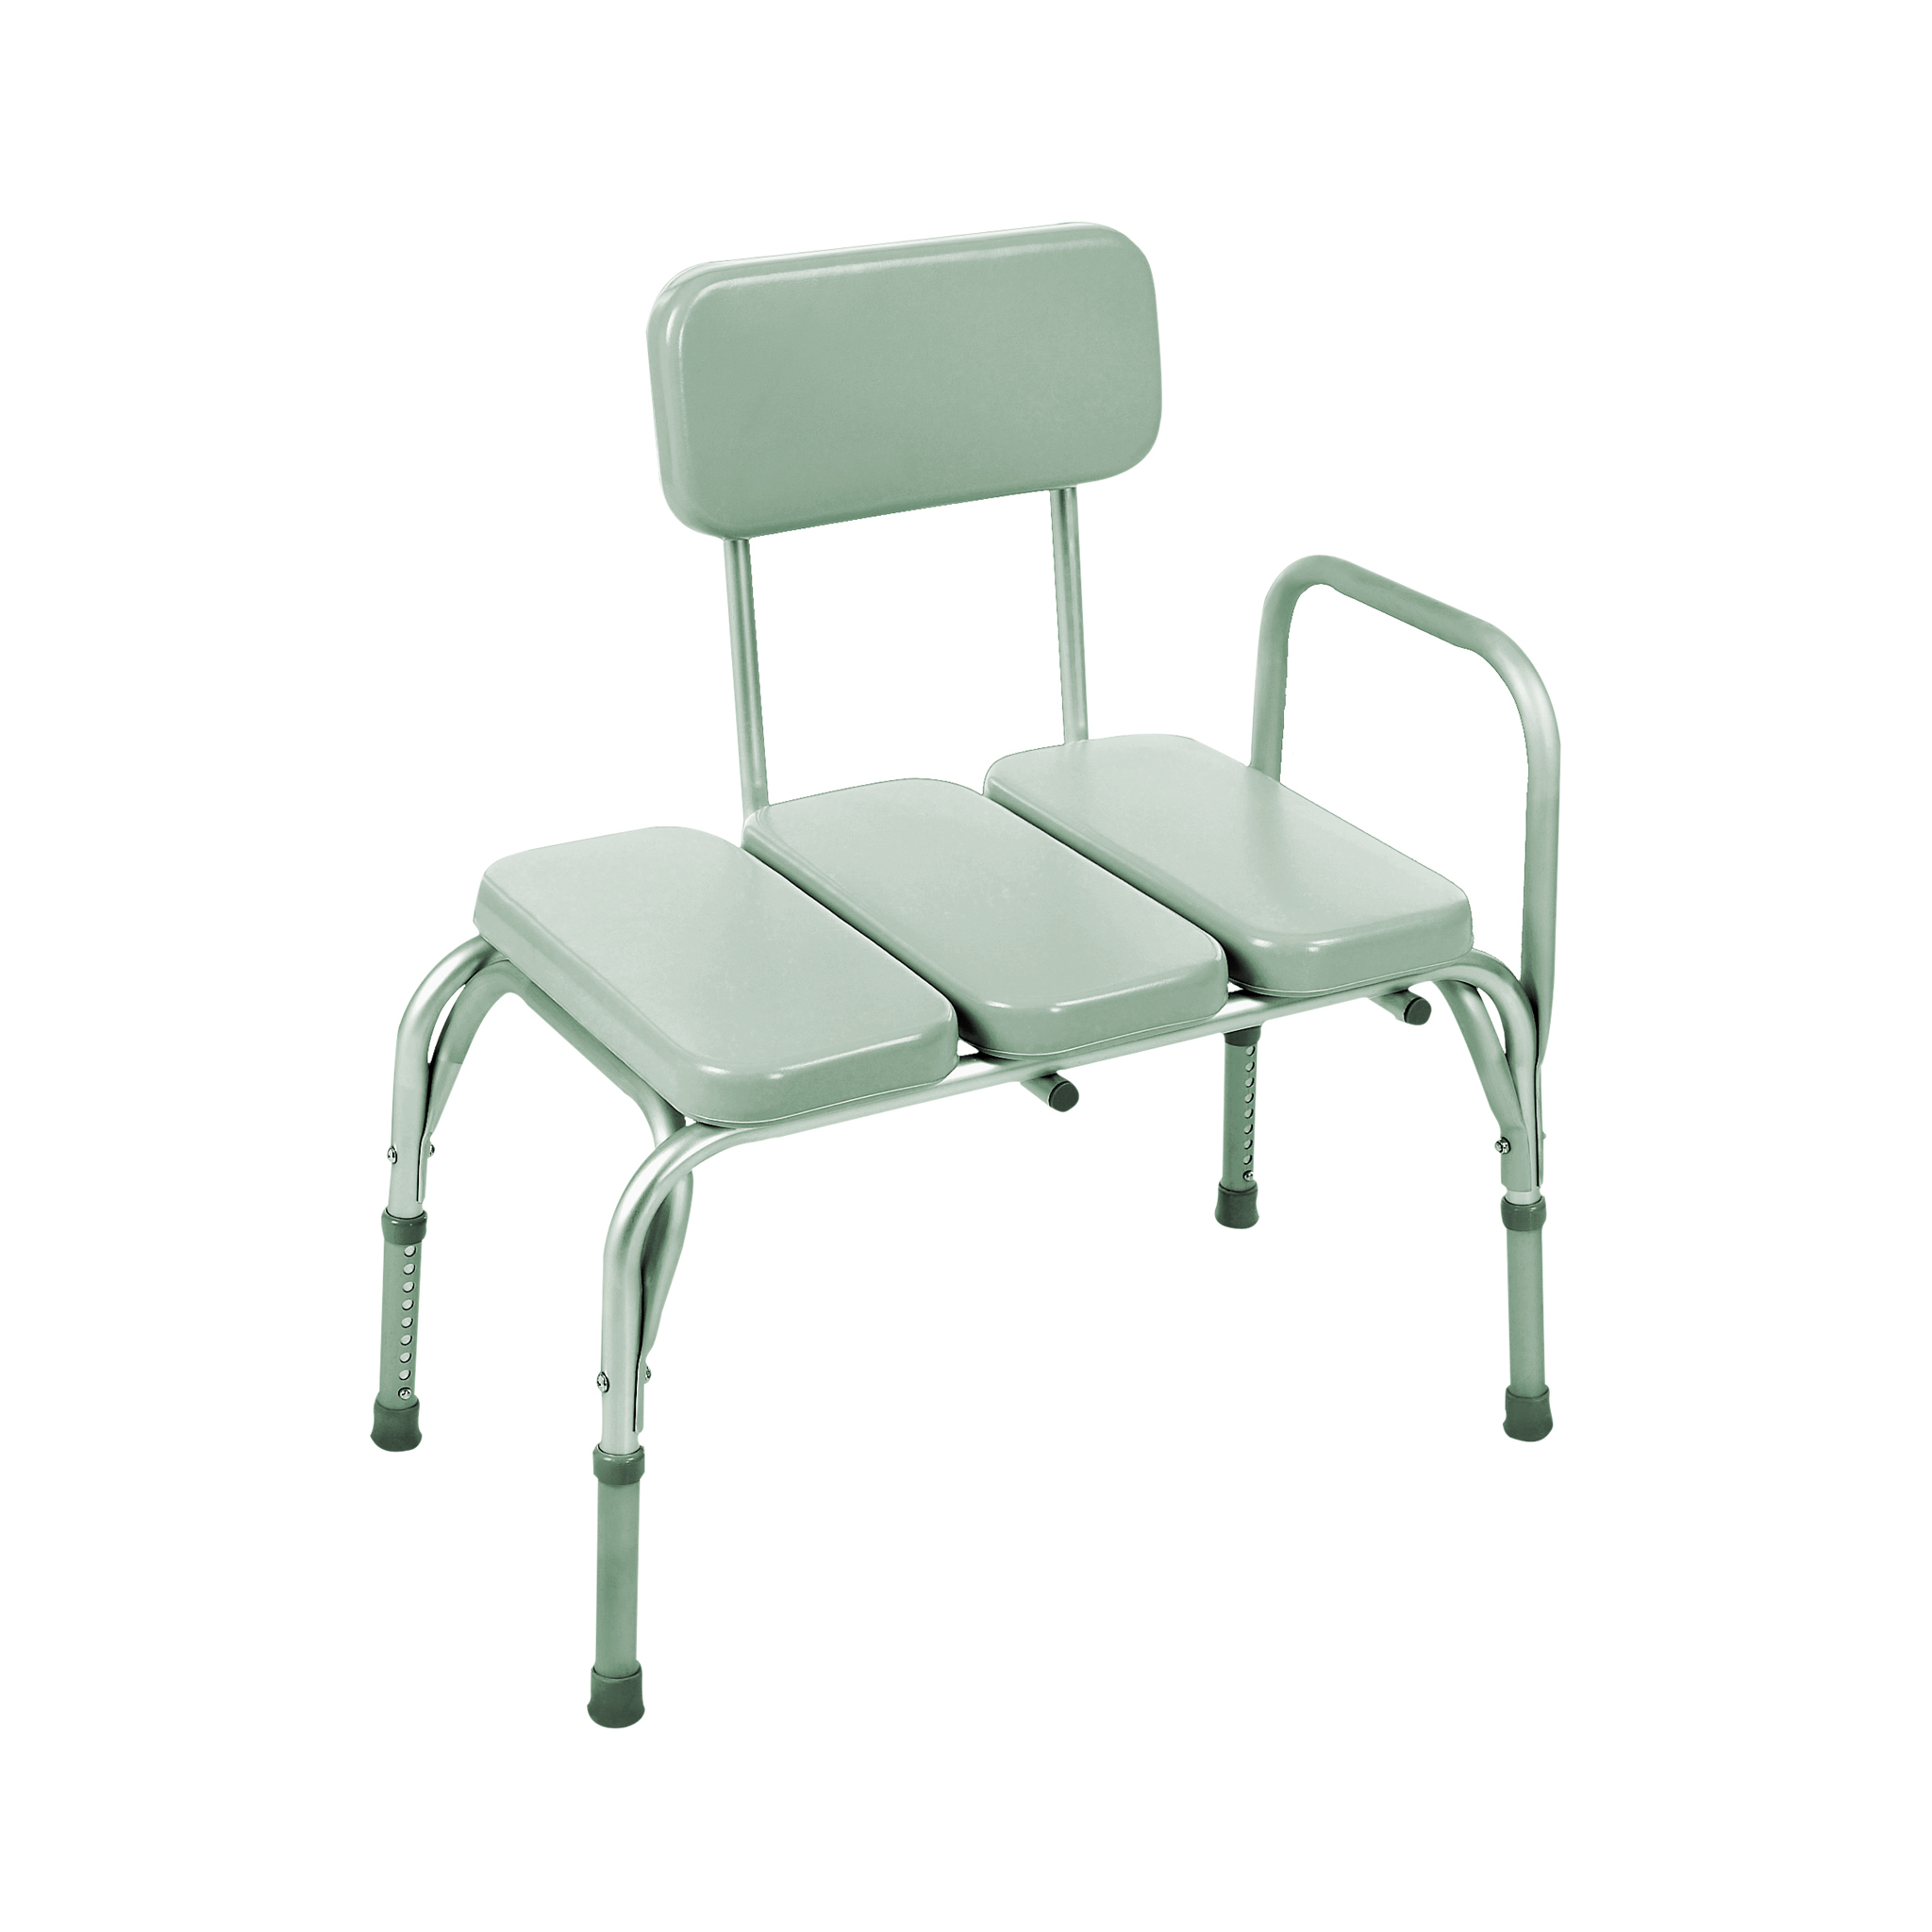 Bath Chairs, Stools and Benches